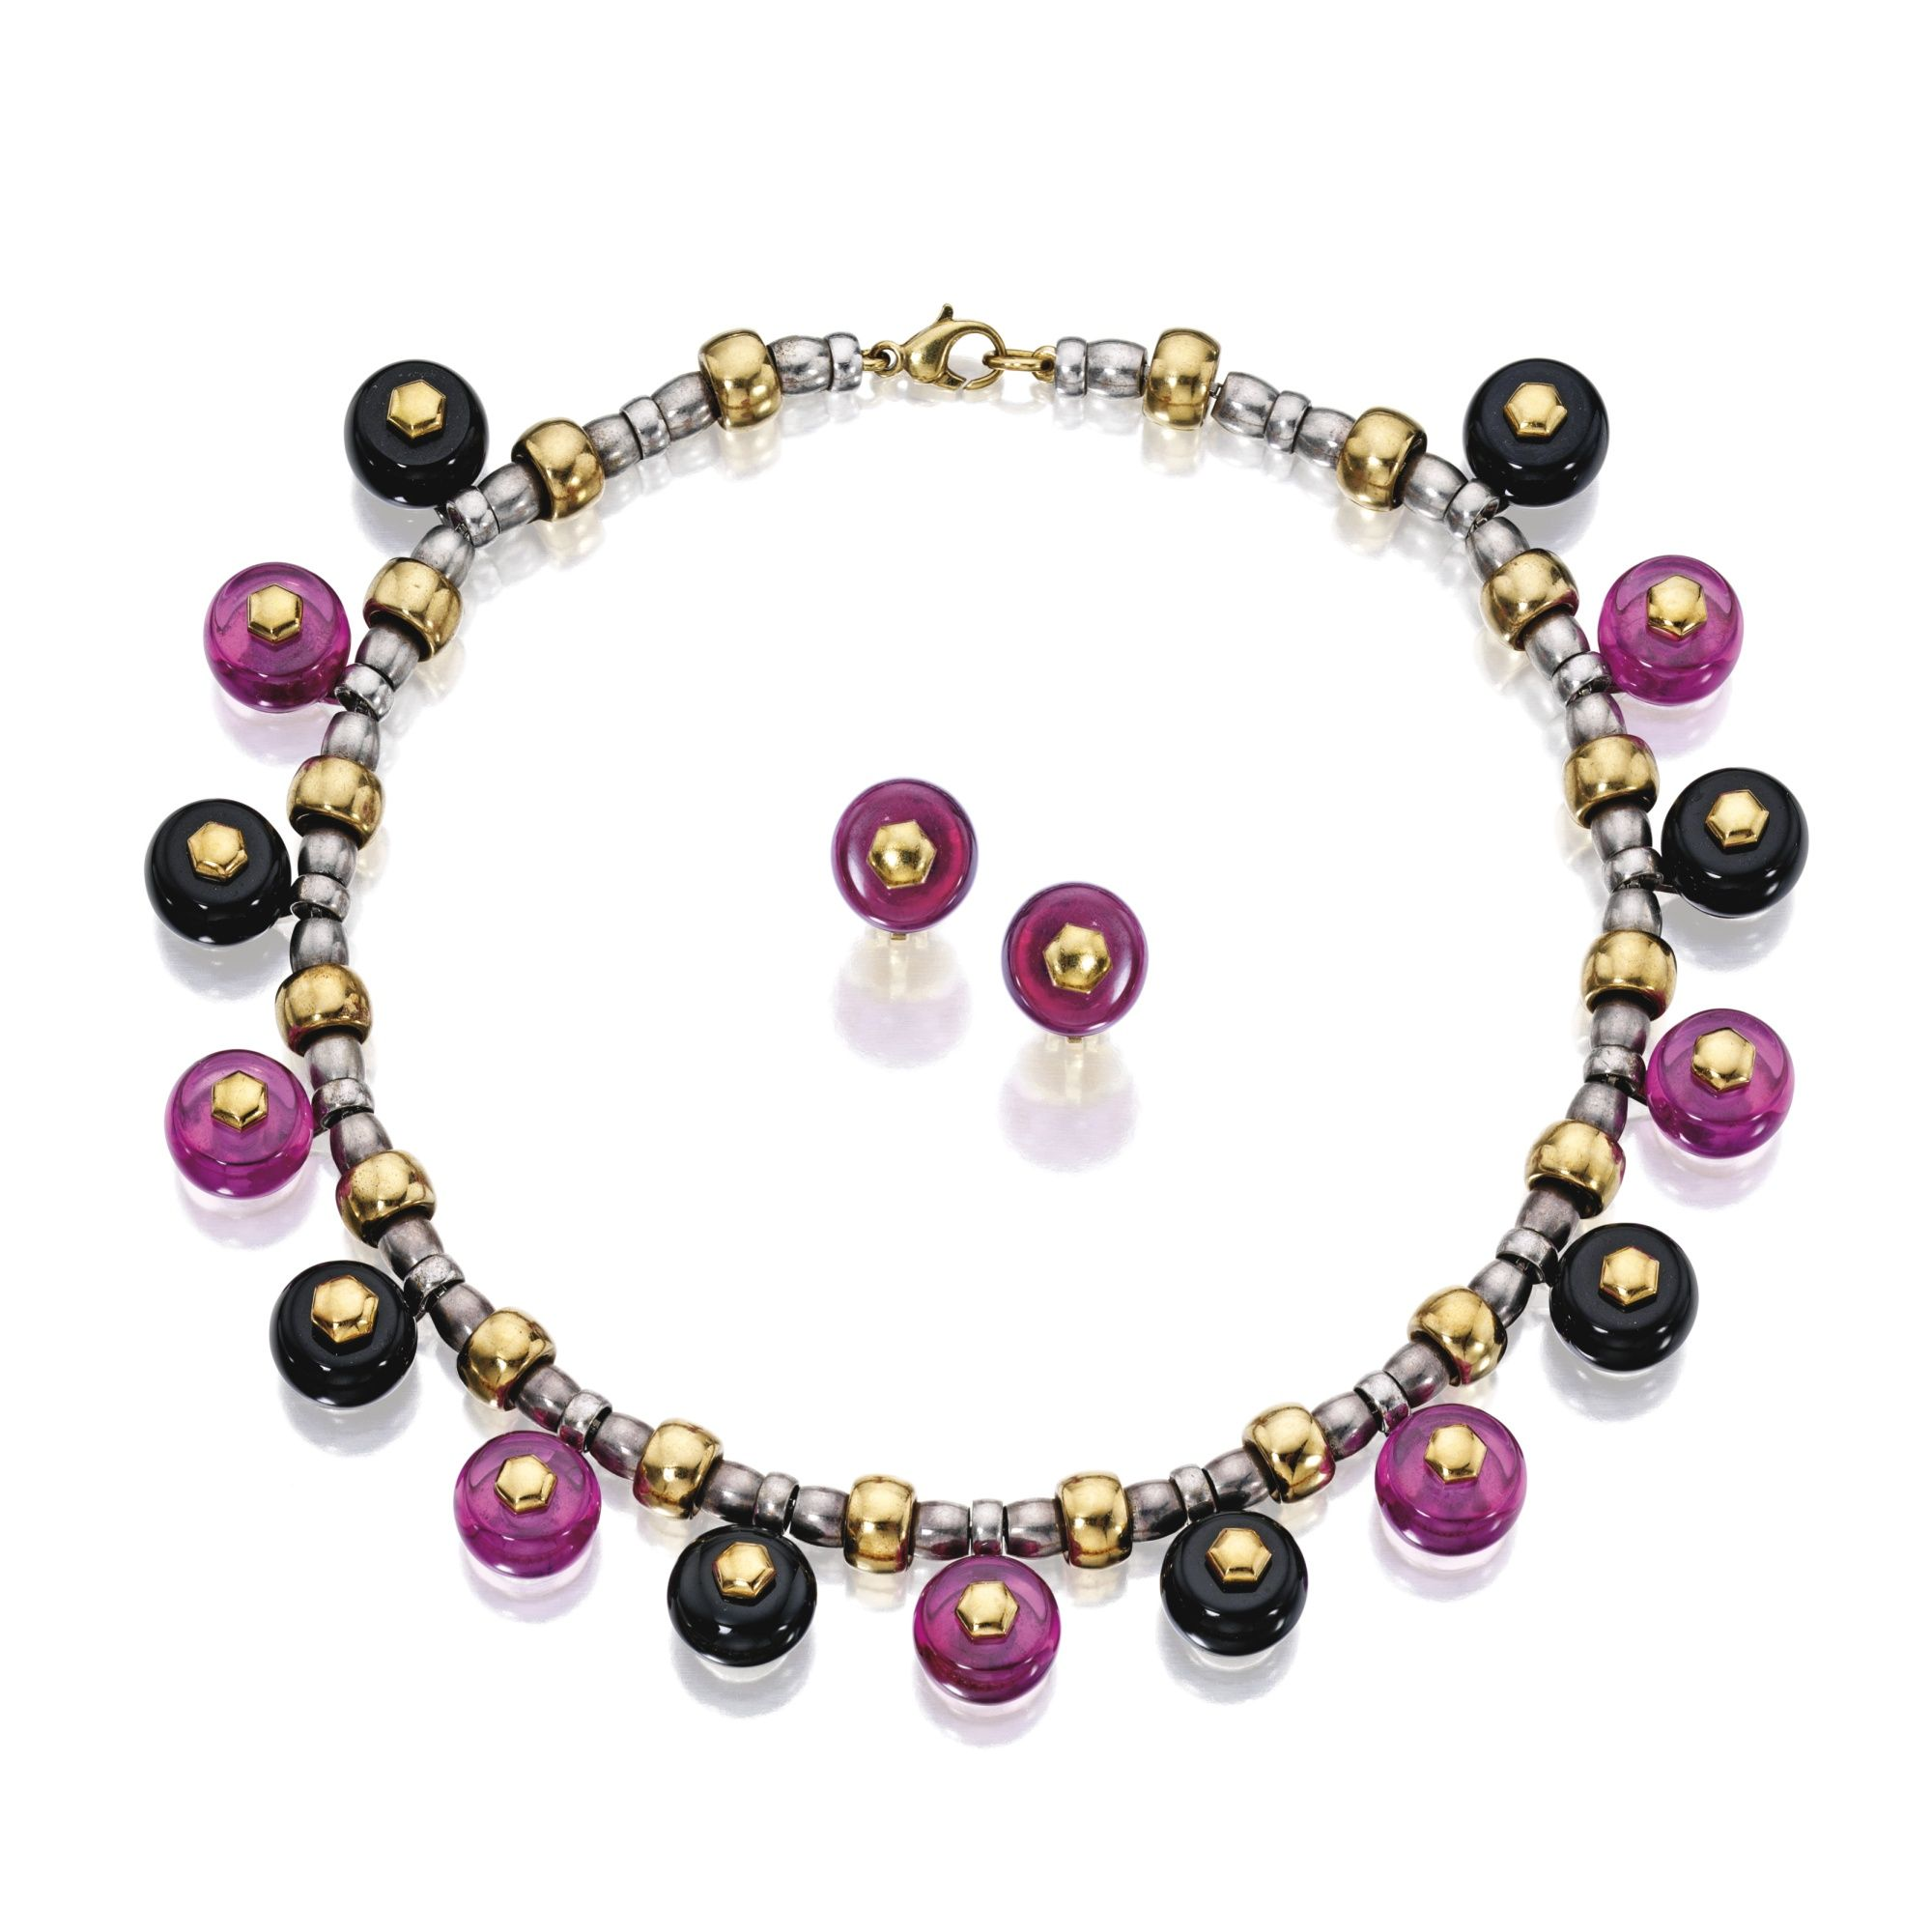 18 Karat Gold, Silver, Pink 'Russian Quartz' and Onyx 'Ciminkit' Necklace and Earclips, Marina B The two-tone necklace supporting seven colored stone beads measuring approximately 14.9 to 14.6 mm, spaced by eight onyx beads, length 16 inches, signed Marina B, numbered C2304, with partial maker's mark; the earclips of similar design, set with two colored stone beads signed Marina B., numbered C2301, with maker's mark; 1995; together with interchangeable beads in various hues.